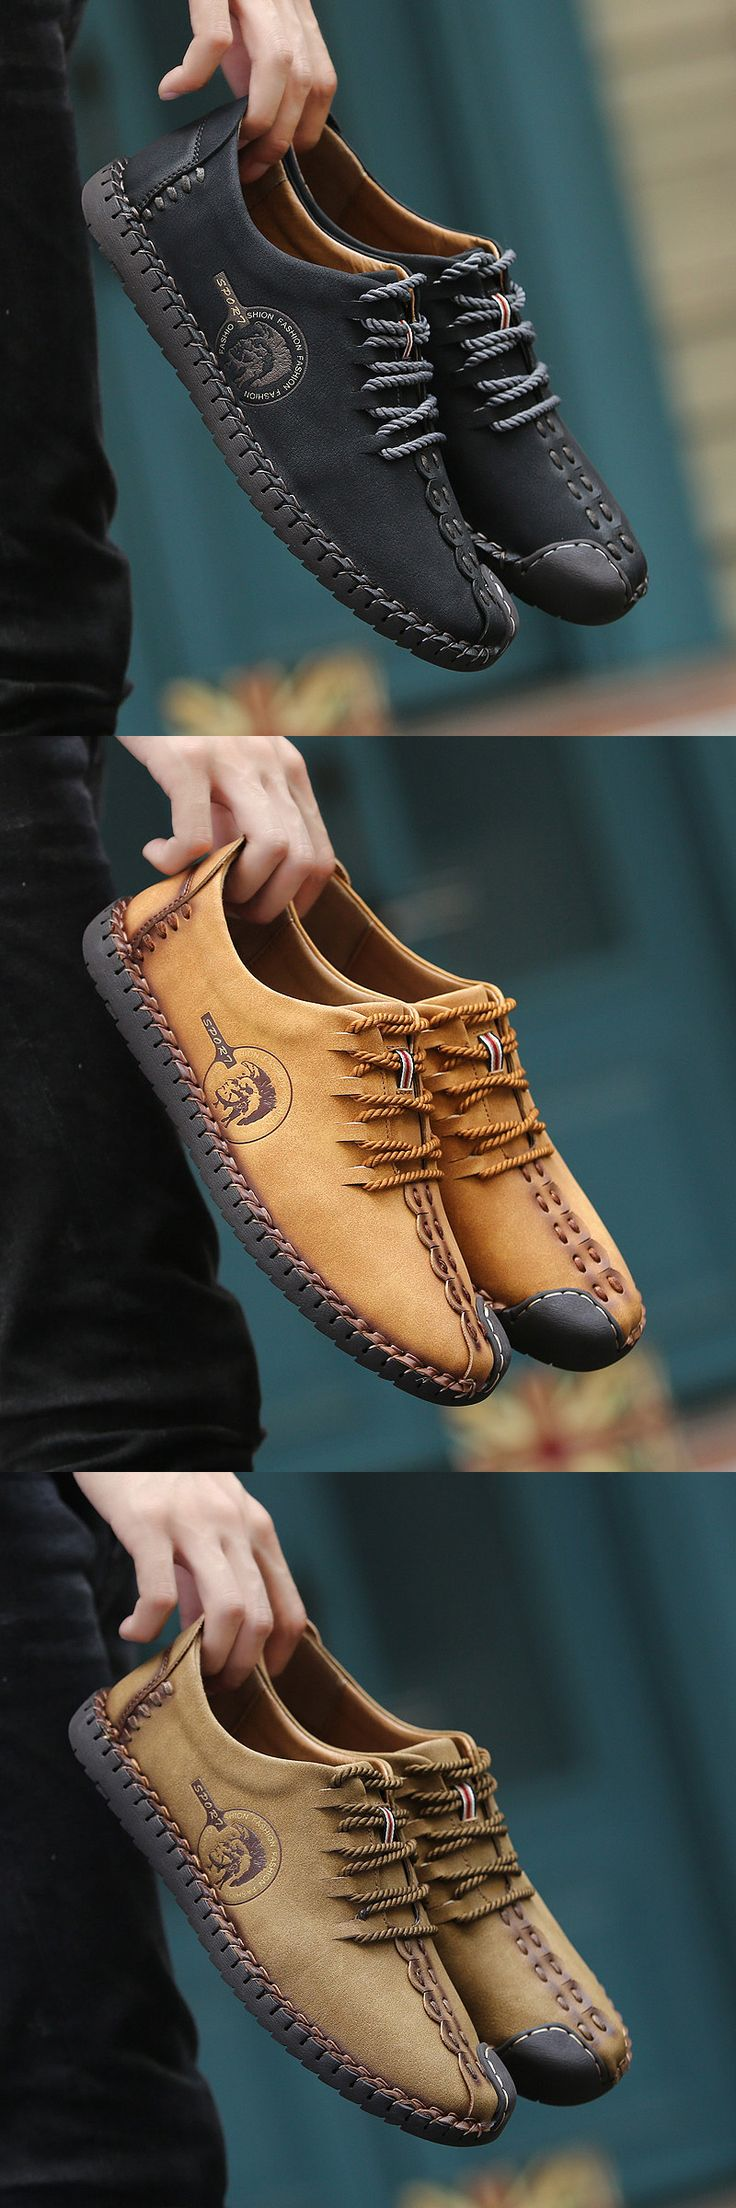 Men British Style Retro Stiching Soft Sole Lace Up Flat Cap-toe Casual Shoes View Signature Designer Style Cufflinks at https://premiumcuffs.com